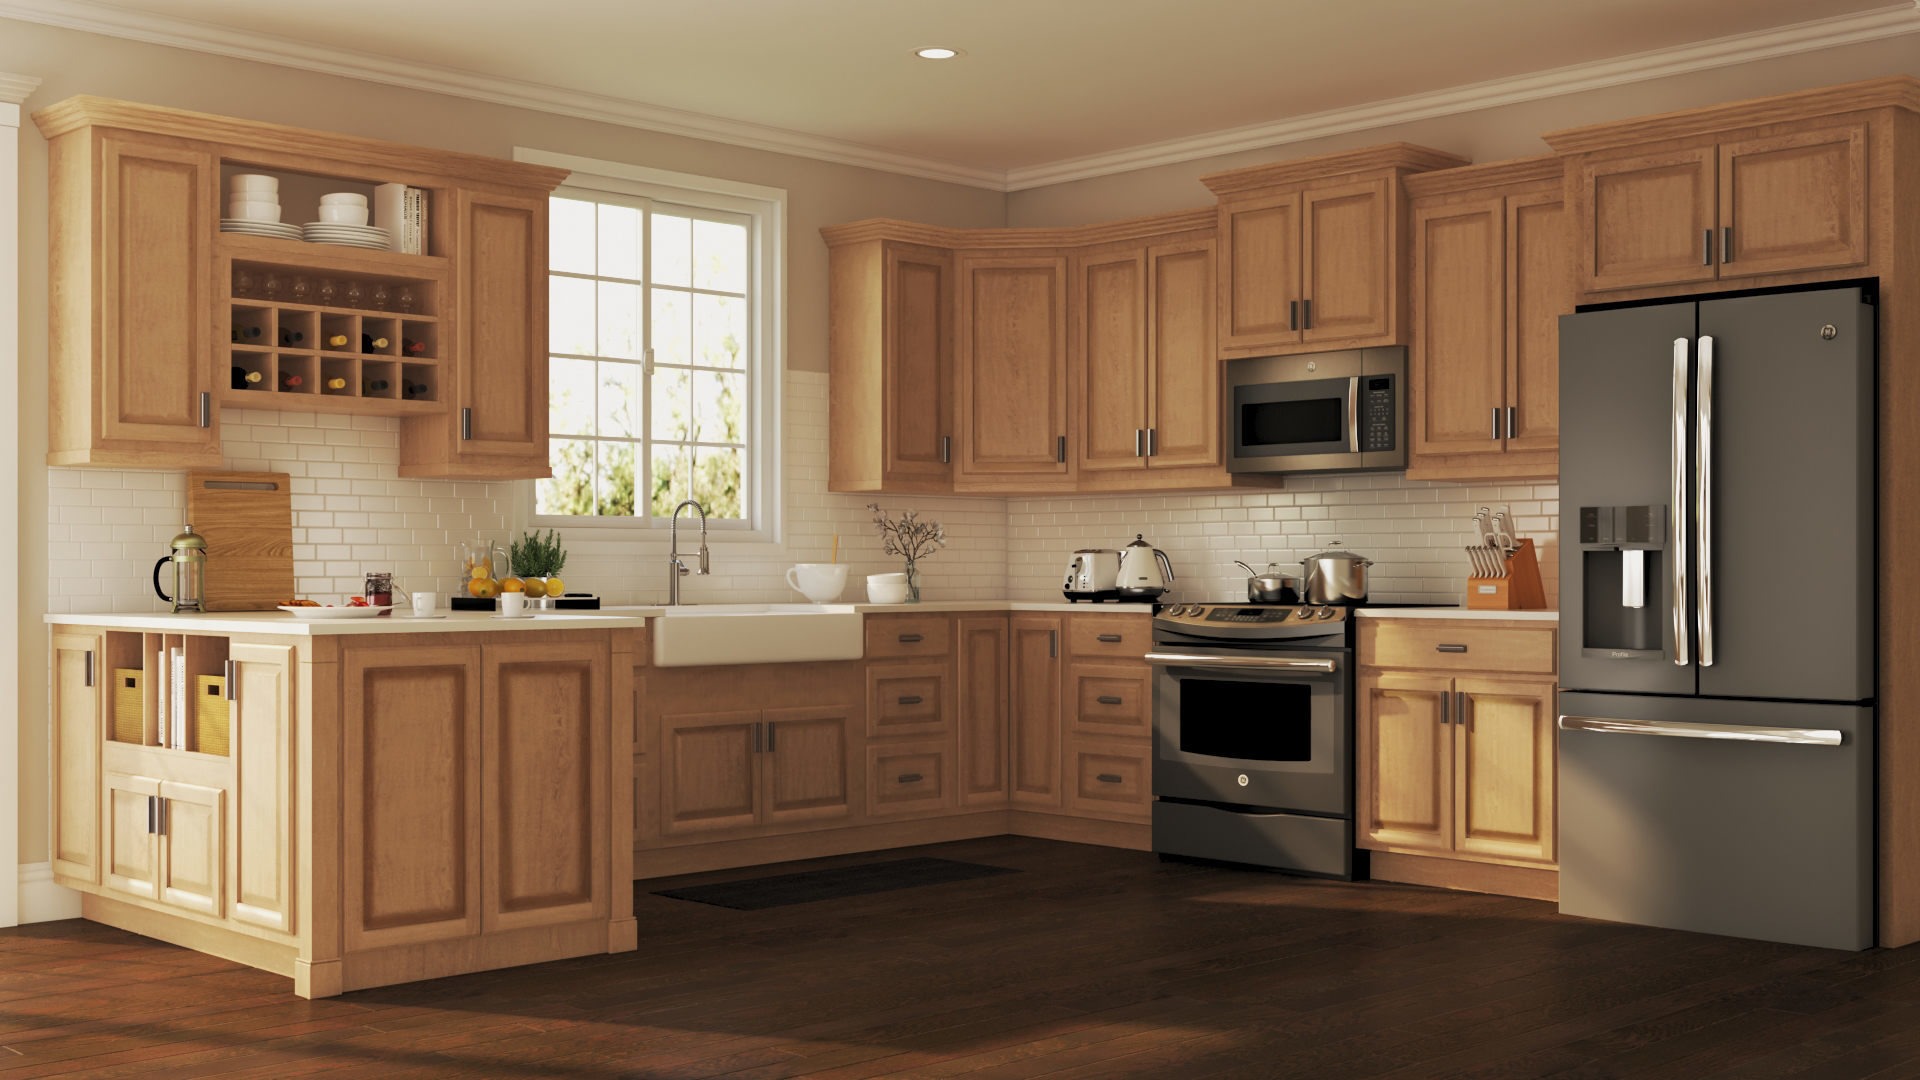 Hampton Medium Oak Coordinating Cabinet Hardware U2013 Kitchen U2013 The Home Depot